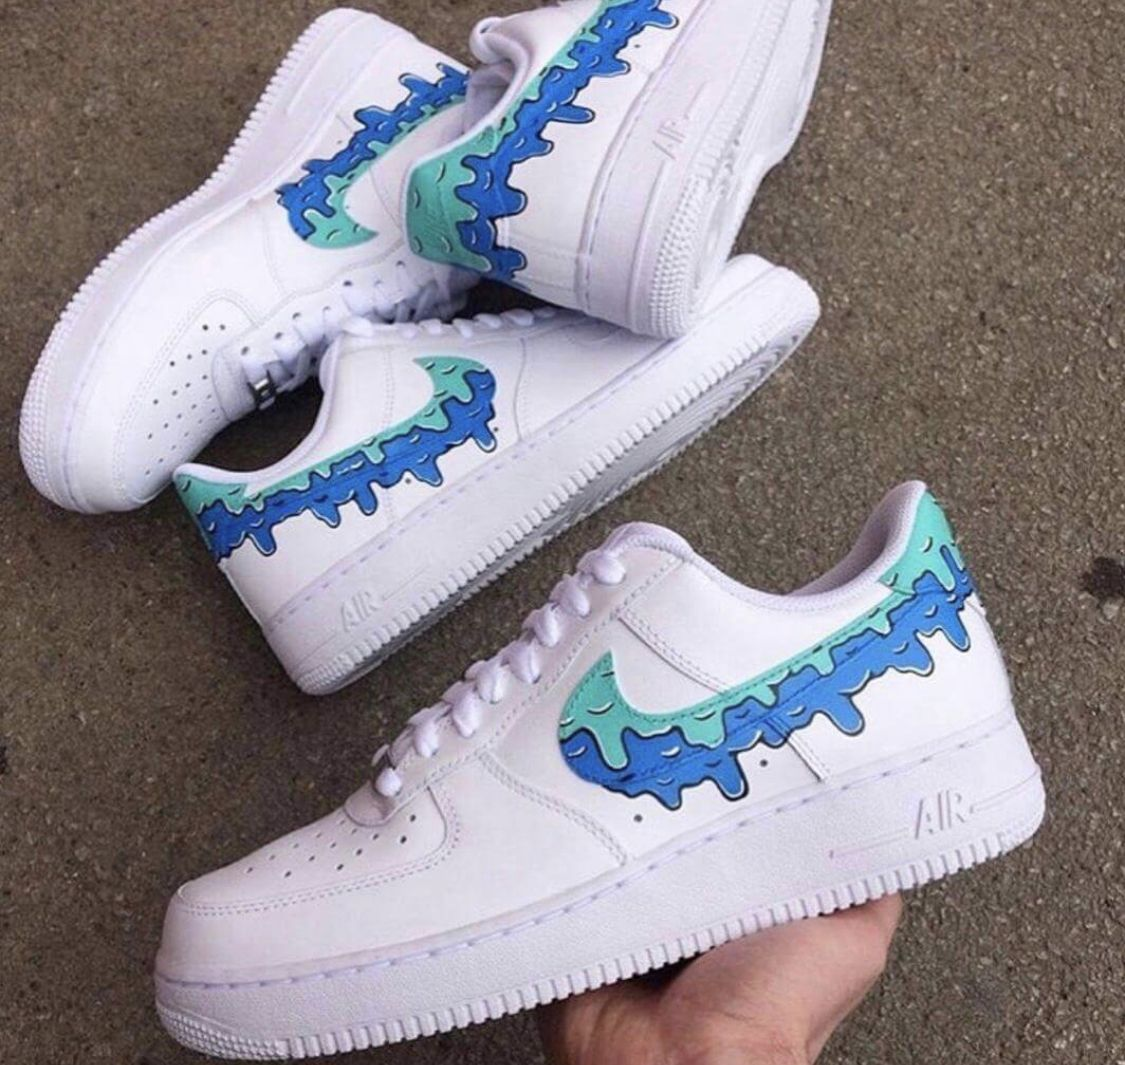 Nike air shoes, Hype shoes, Fresh shoes